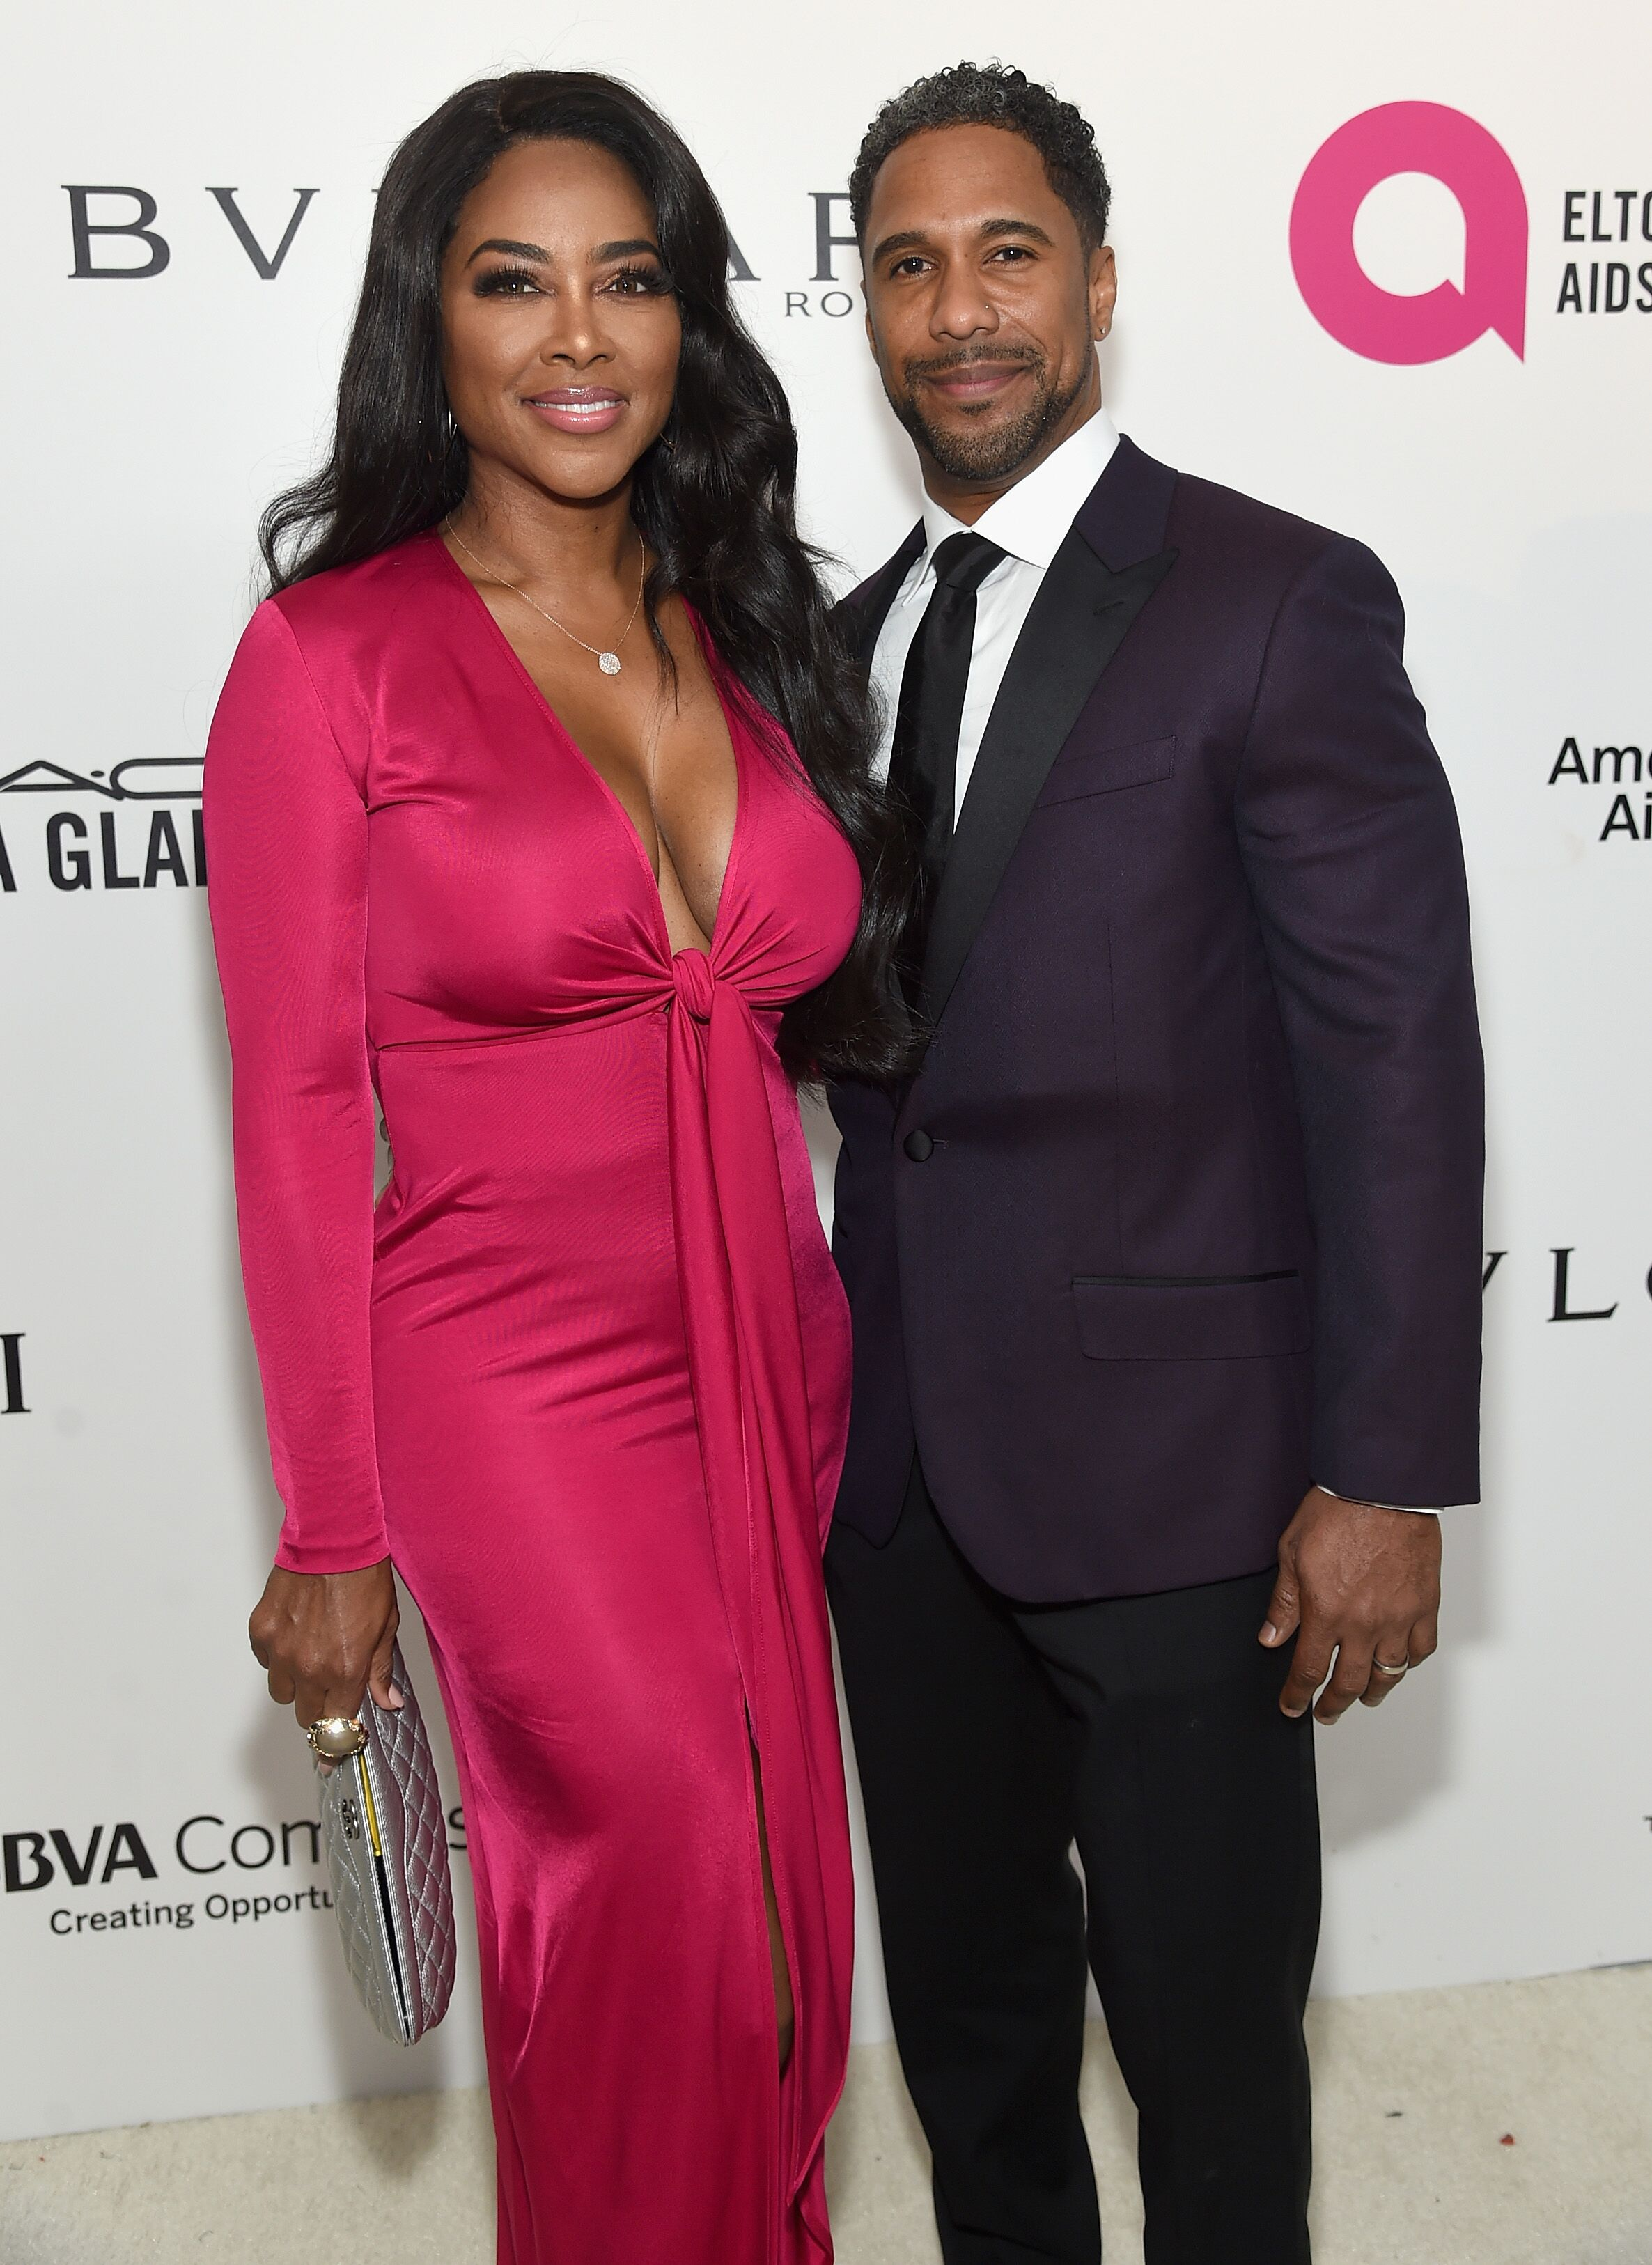 Kenya Moore and estranged husband Marc Daly at an event | Source: Getty Images/GlobalImagesUkraine